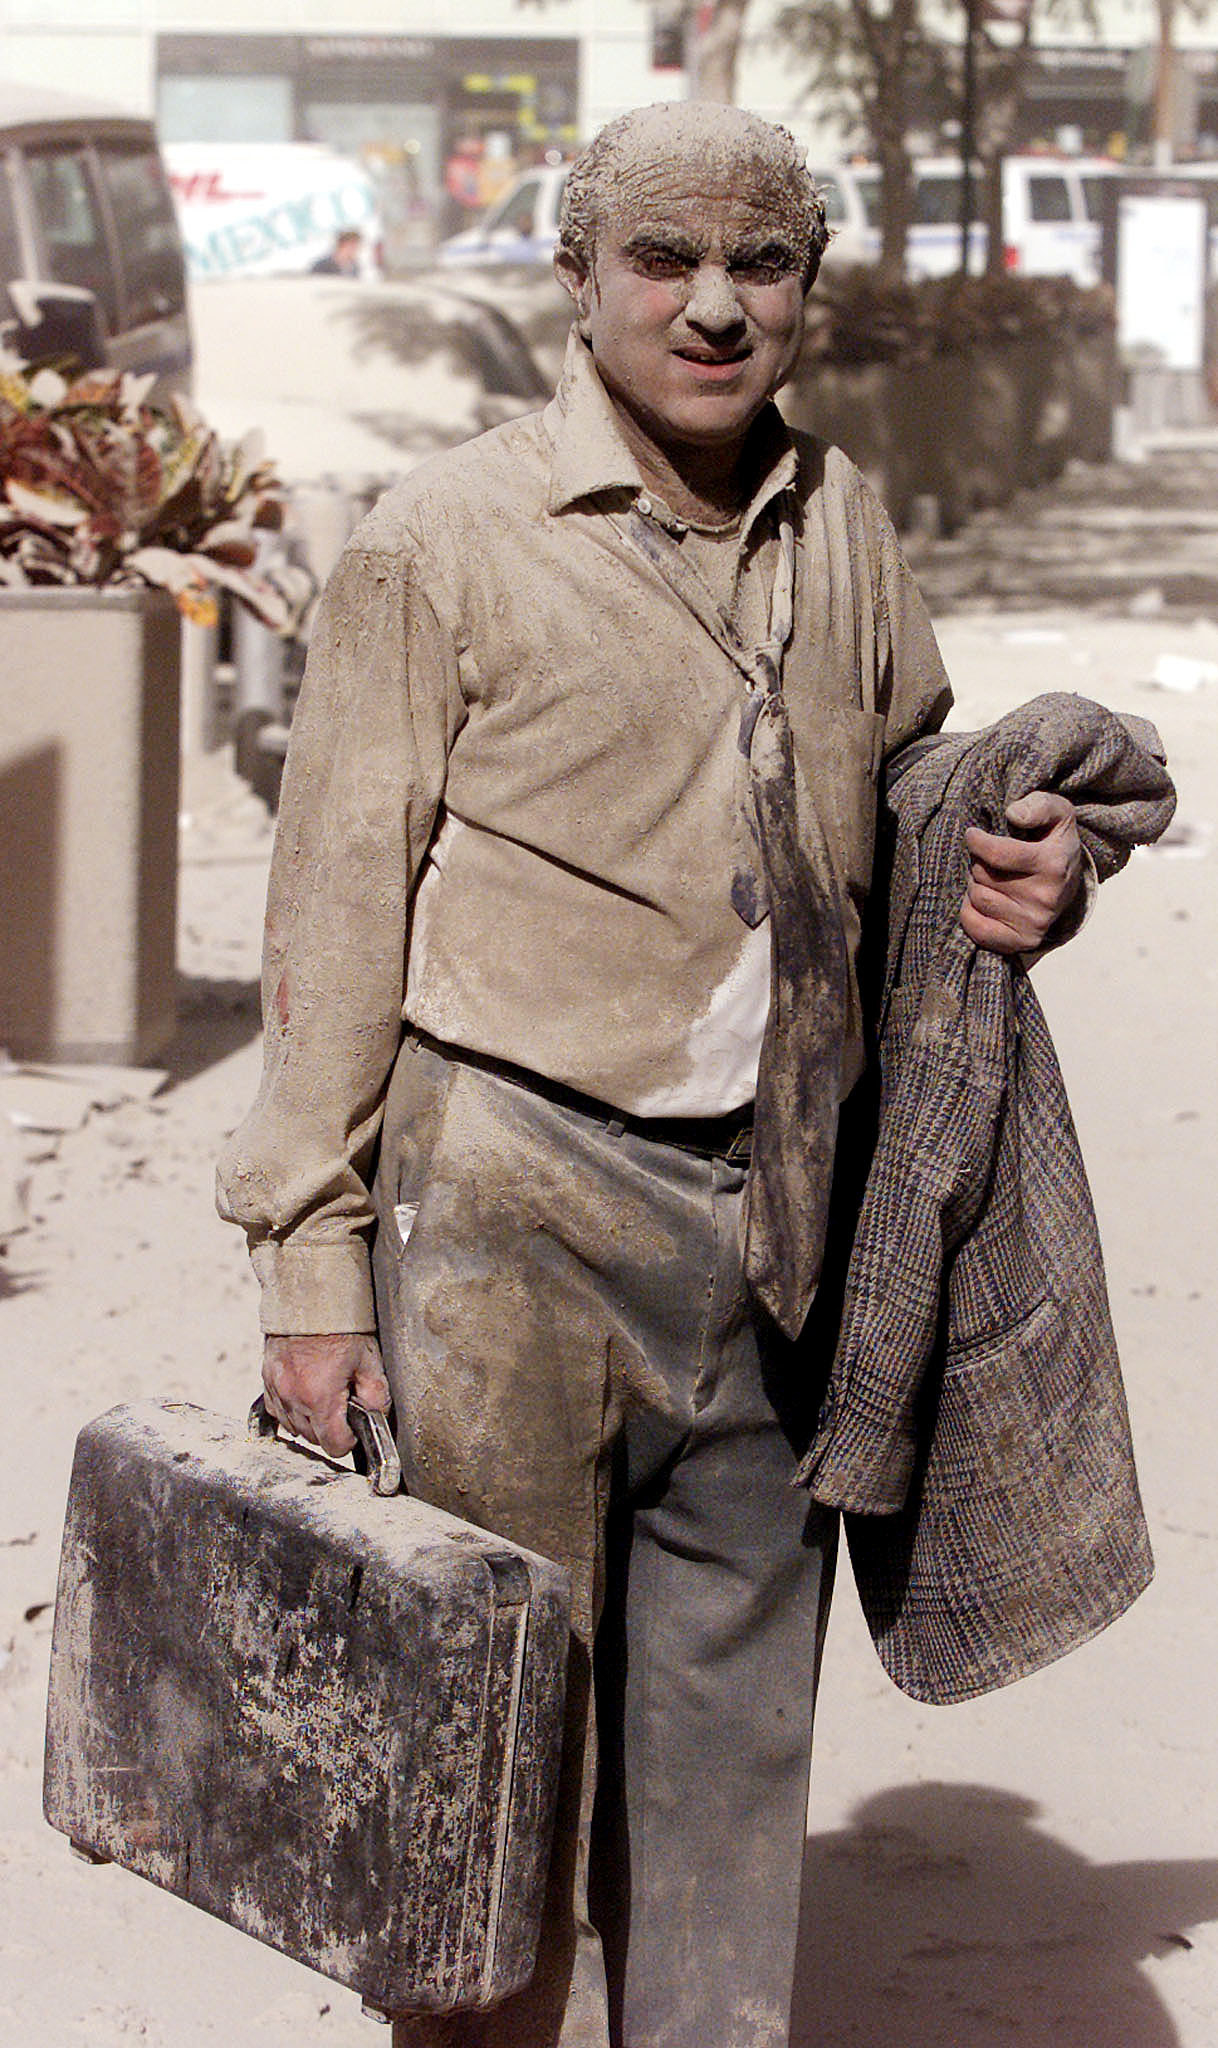 A man holding a briefcase and suitcoat totally covered in dust and ash